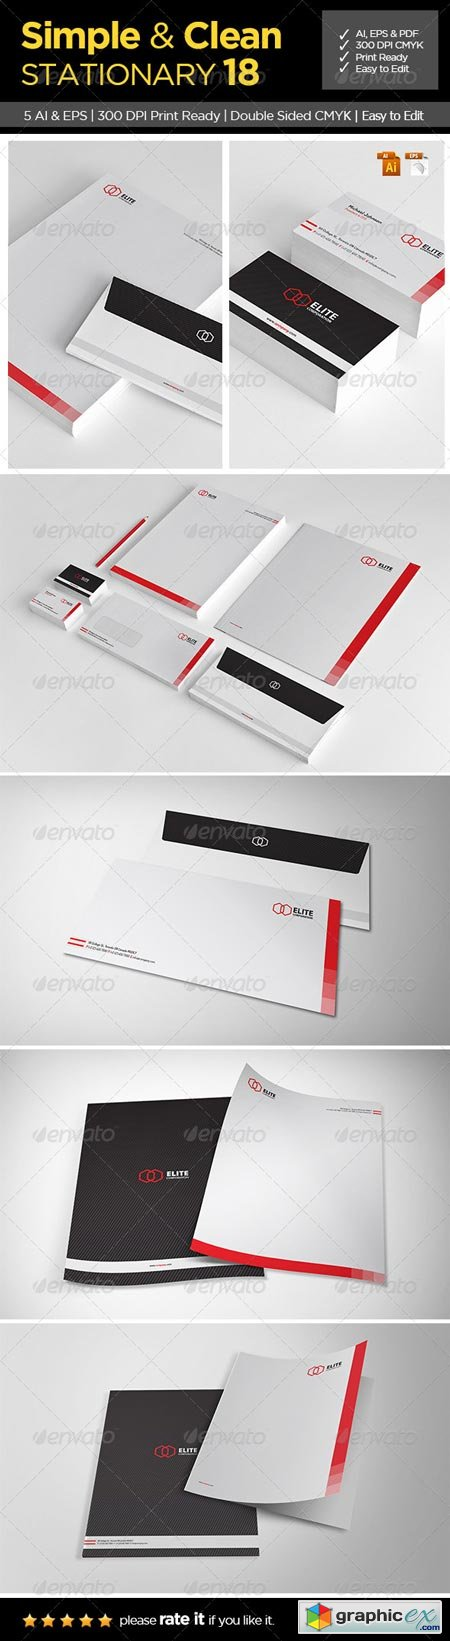 Simple and Clean Stationary 18 6507676